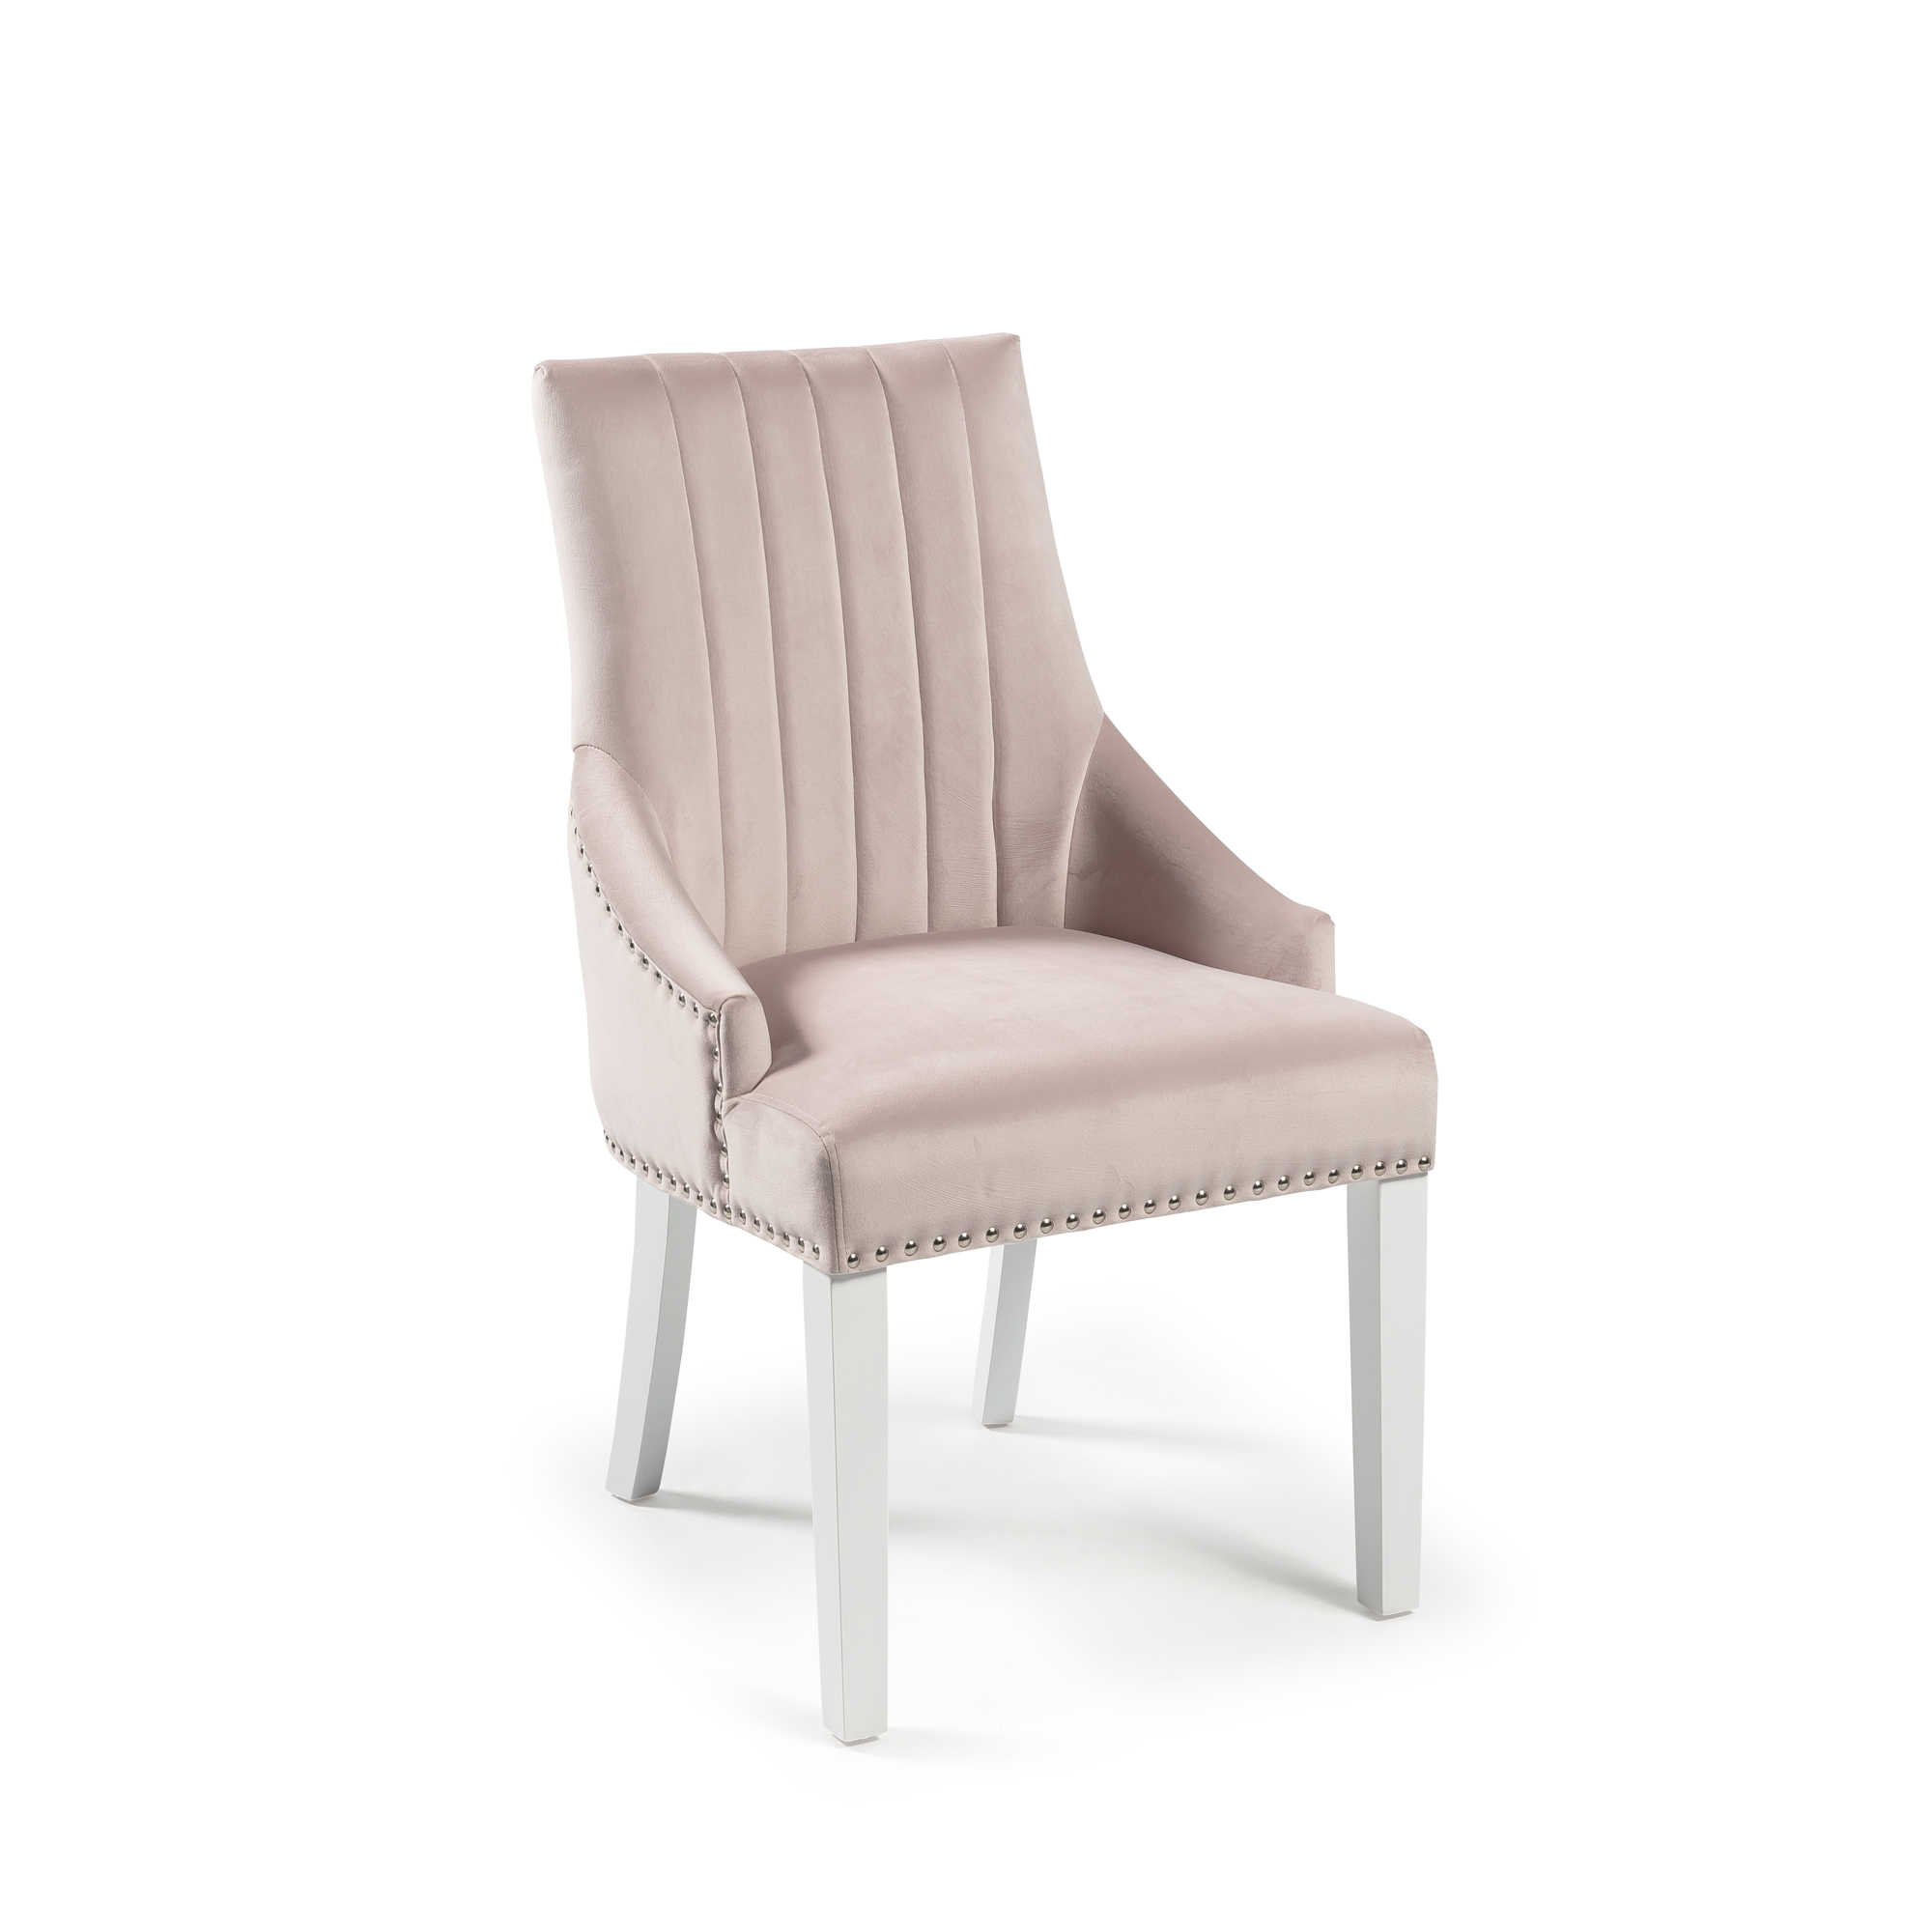 Chelsea Pink Blush Velvet Upholstered Scoop Dining Chair – White Legs – Full Stud (Set of 2)